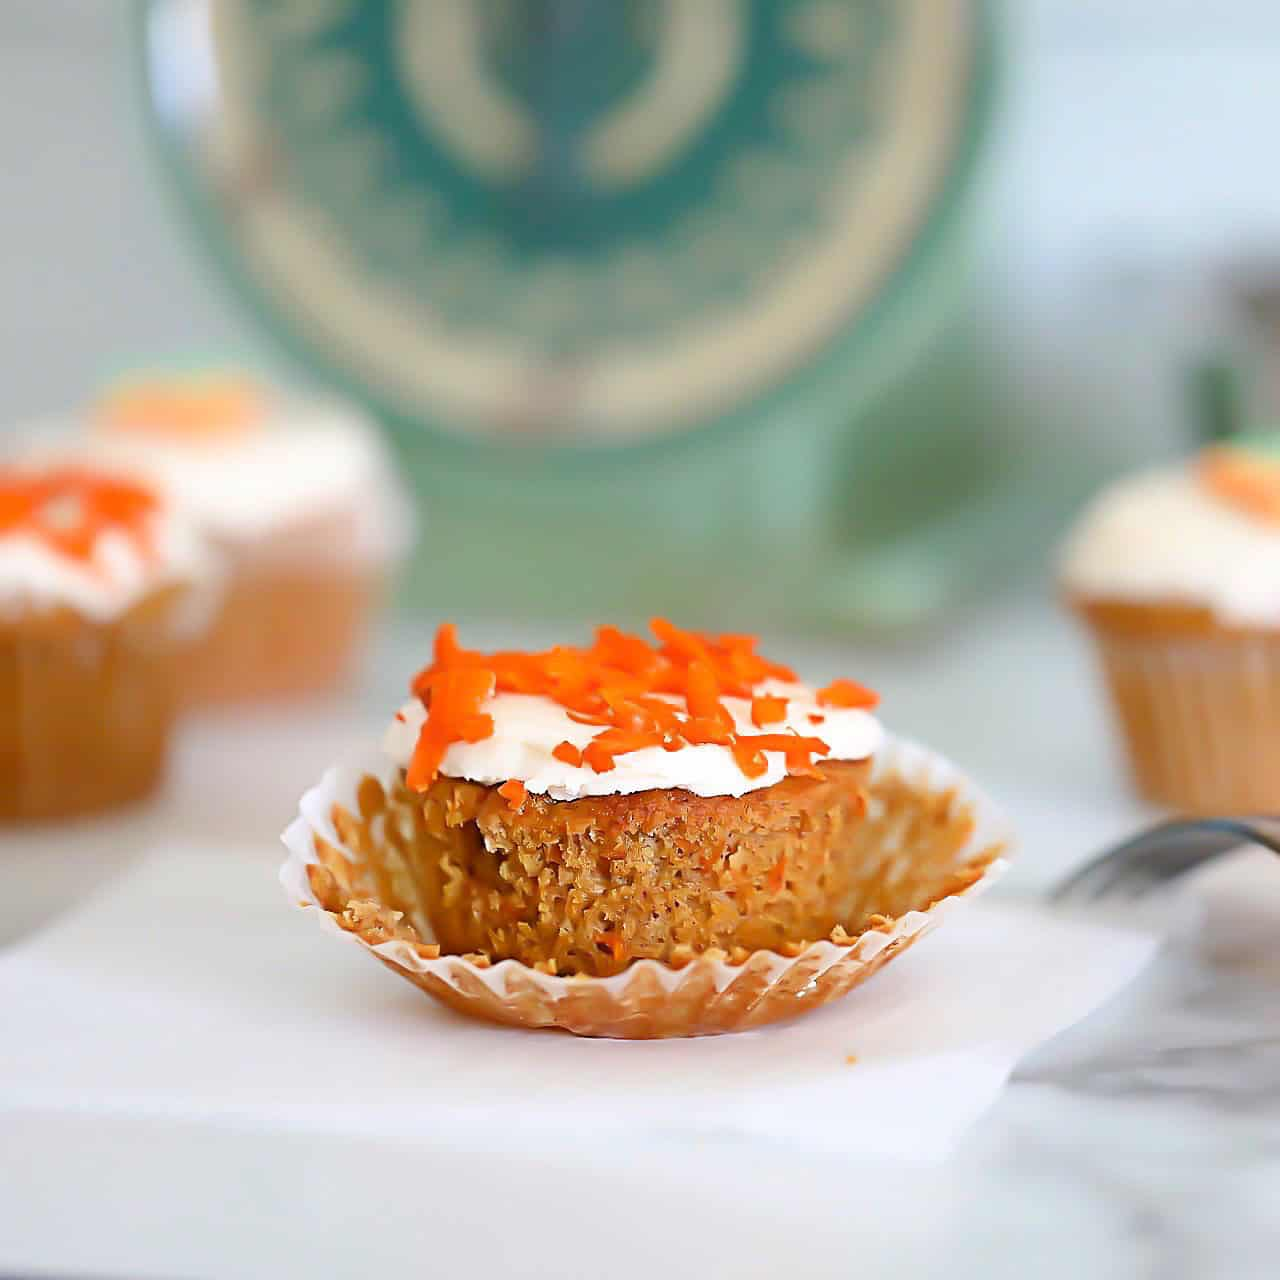 Keto Carrot Muffin Unwrapped